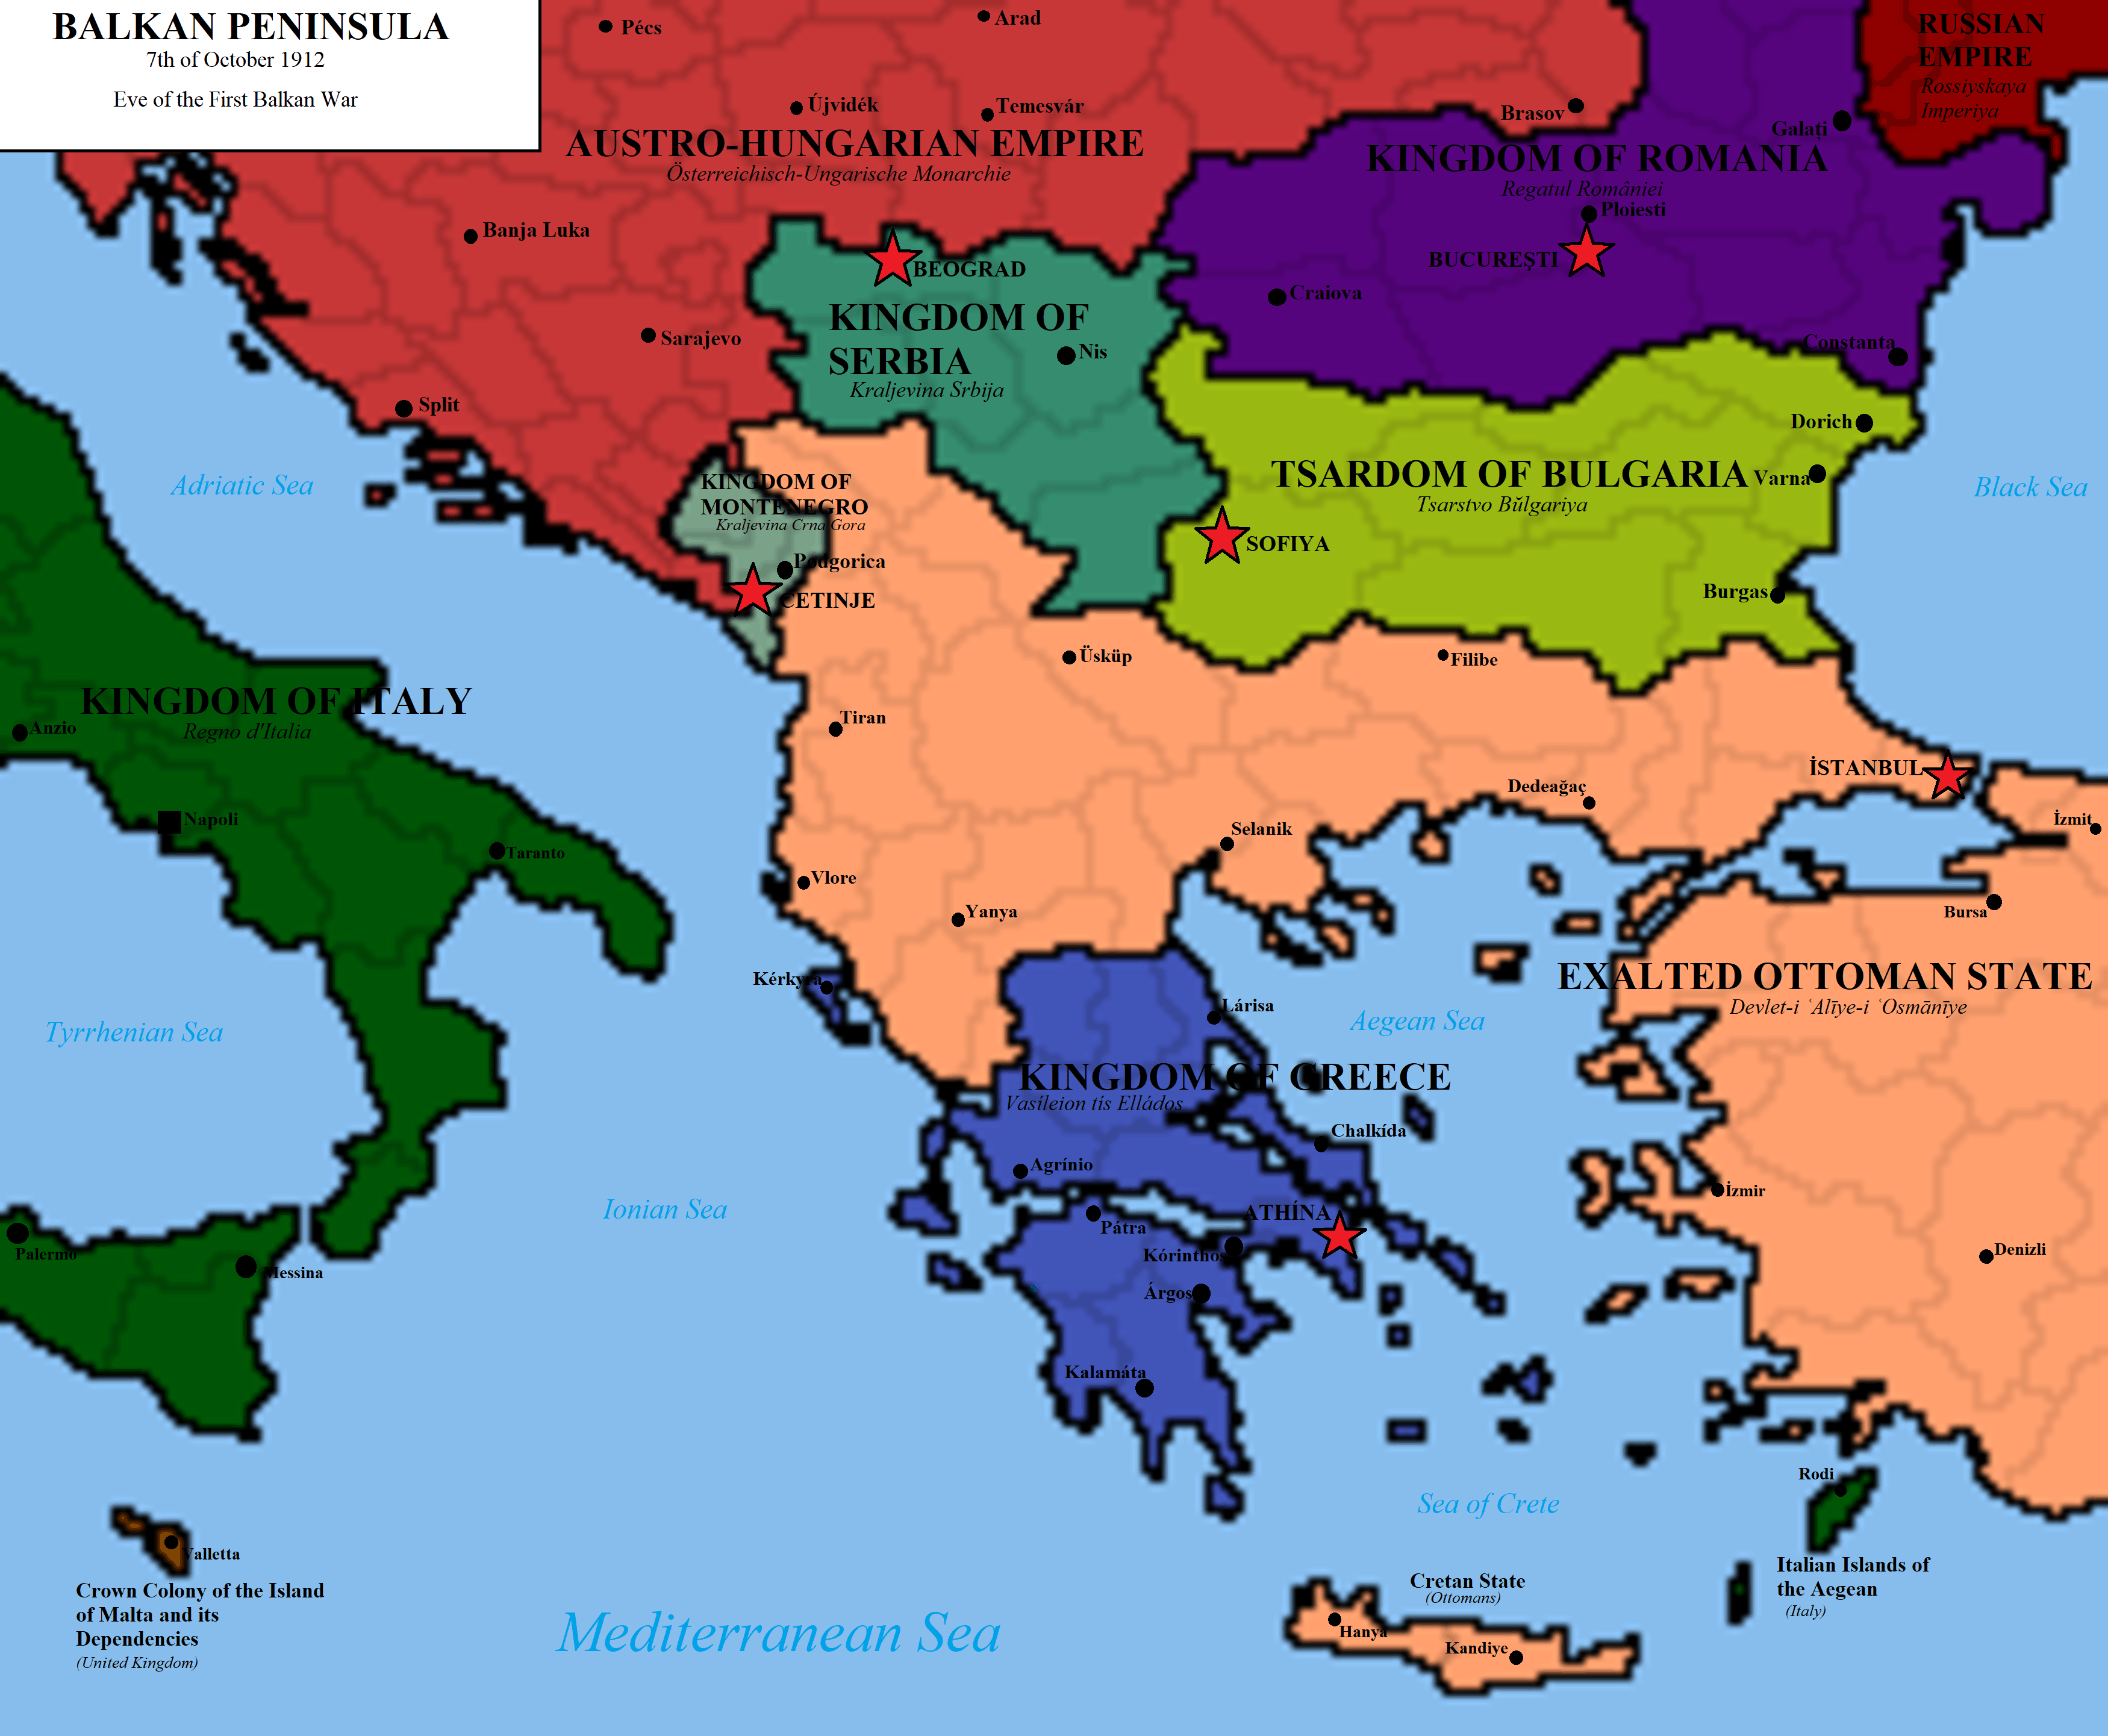 May 30, 1913: Southern Epirus, Macedonia and Aegean islands unify with Greece from Ottoman Empire 6